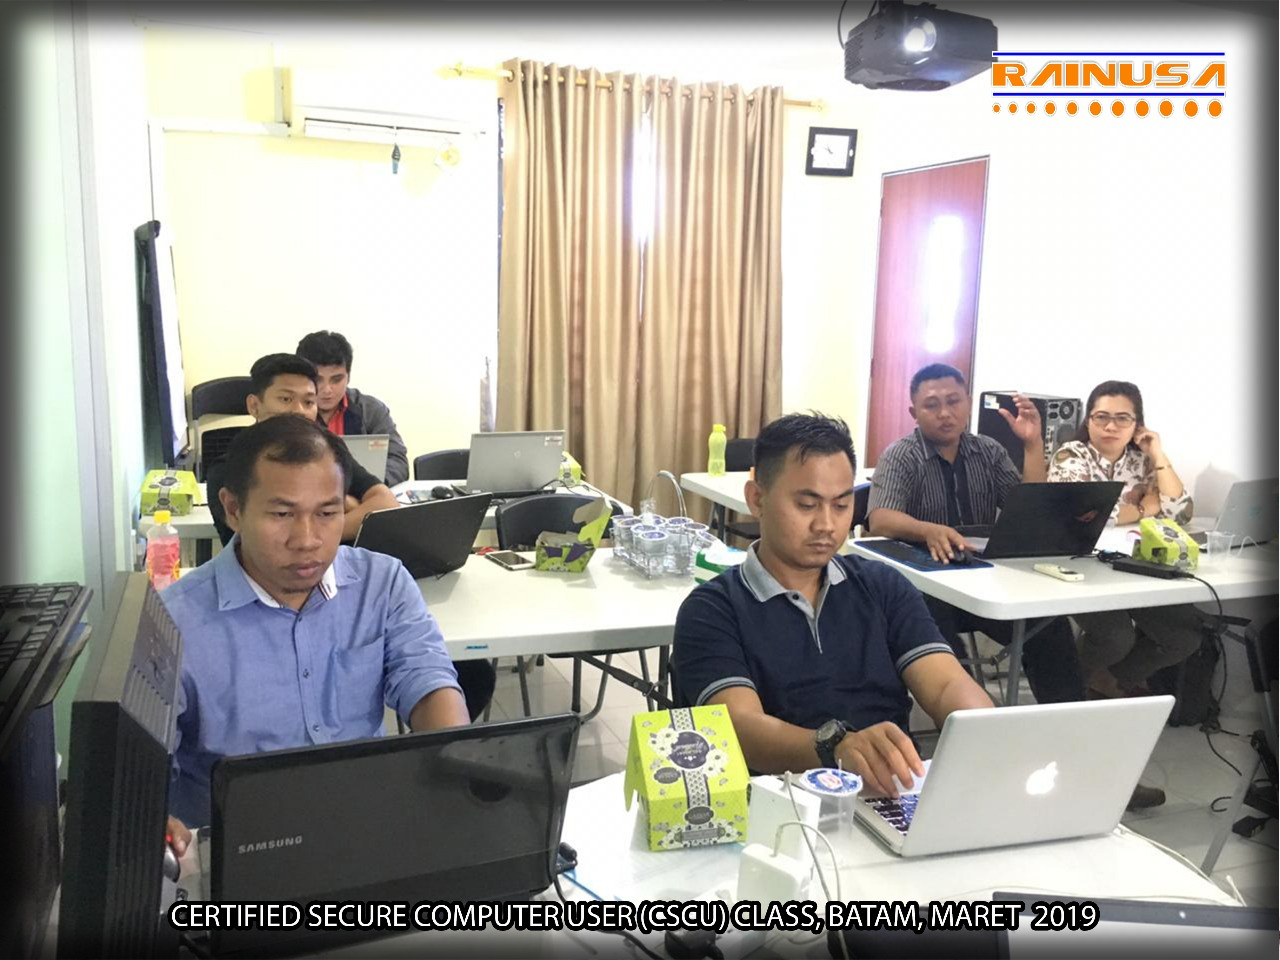 Training Certified Secure Computer User di Rainusa Batam